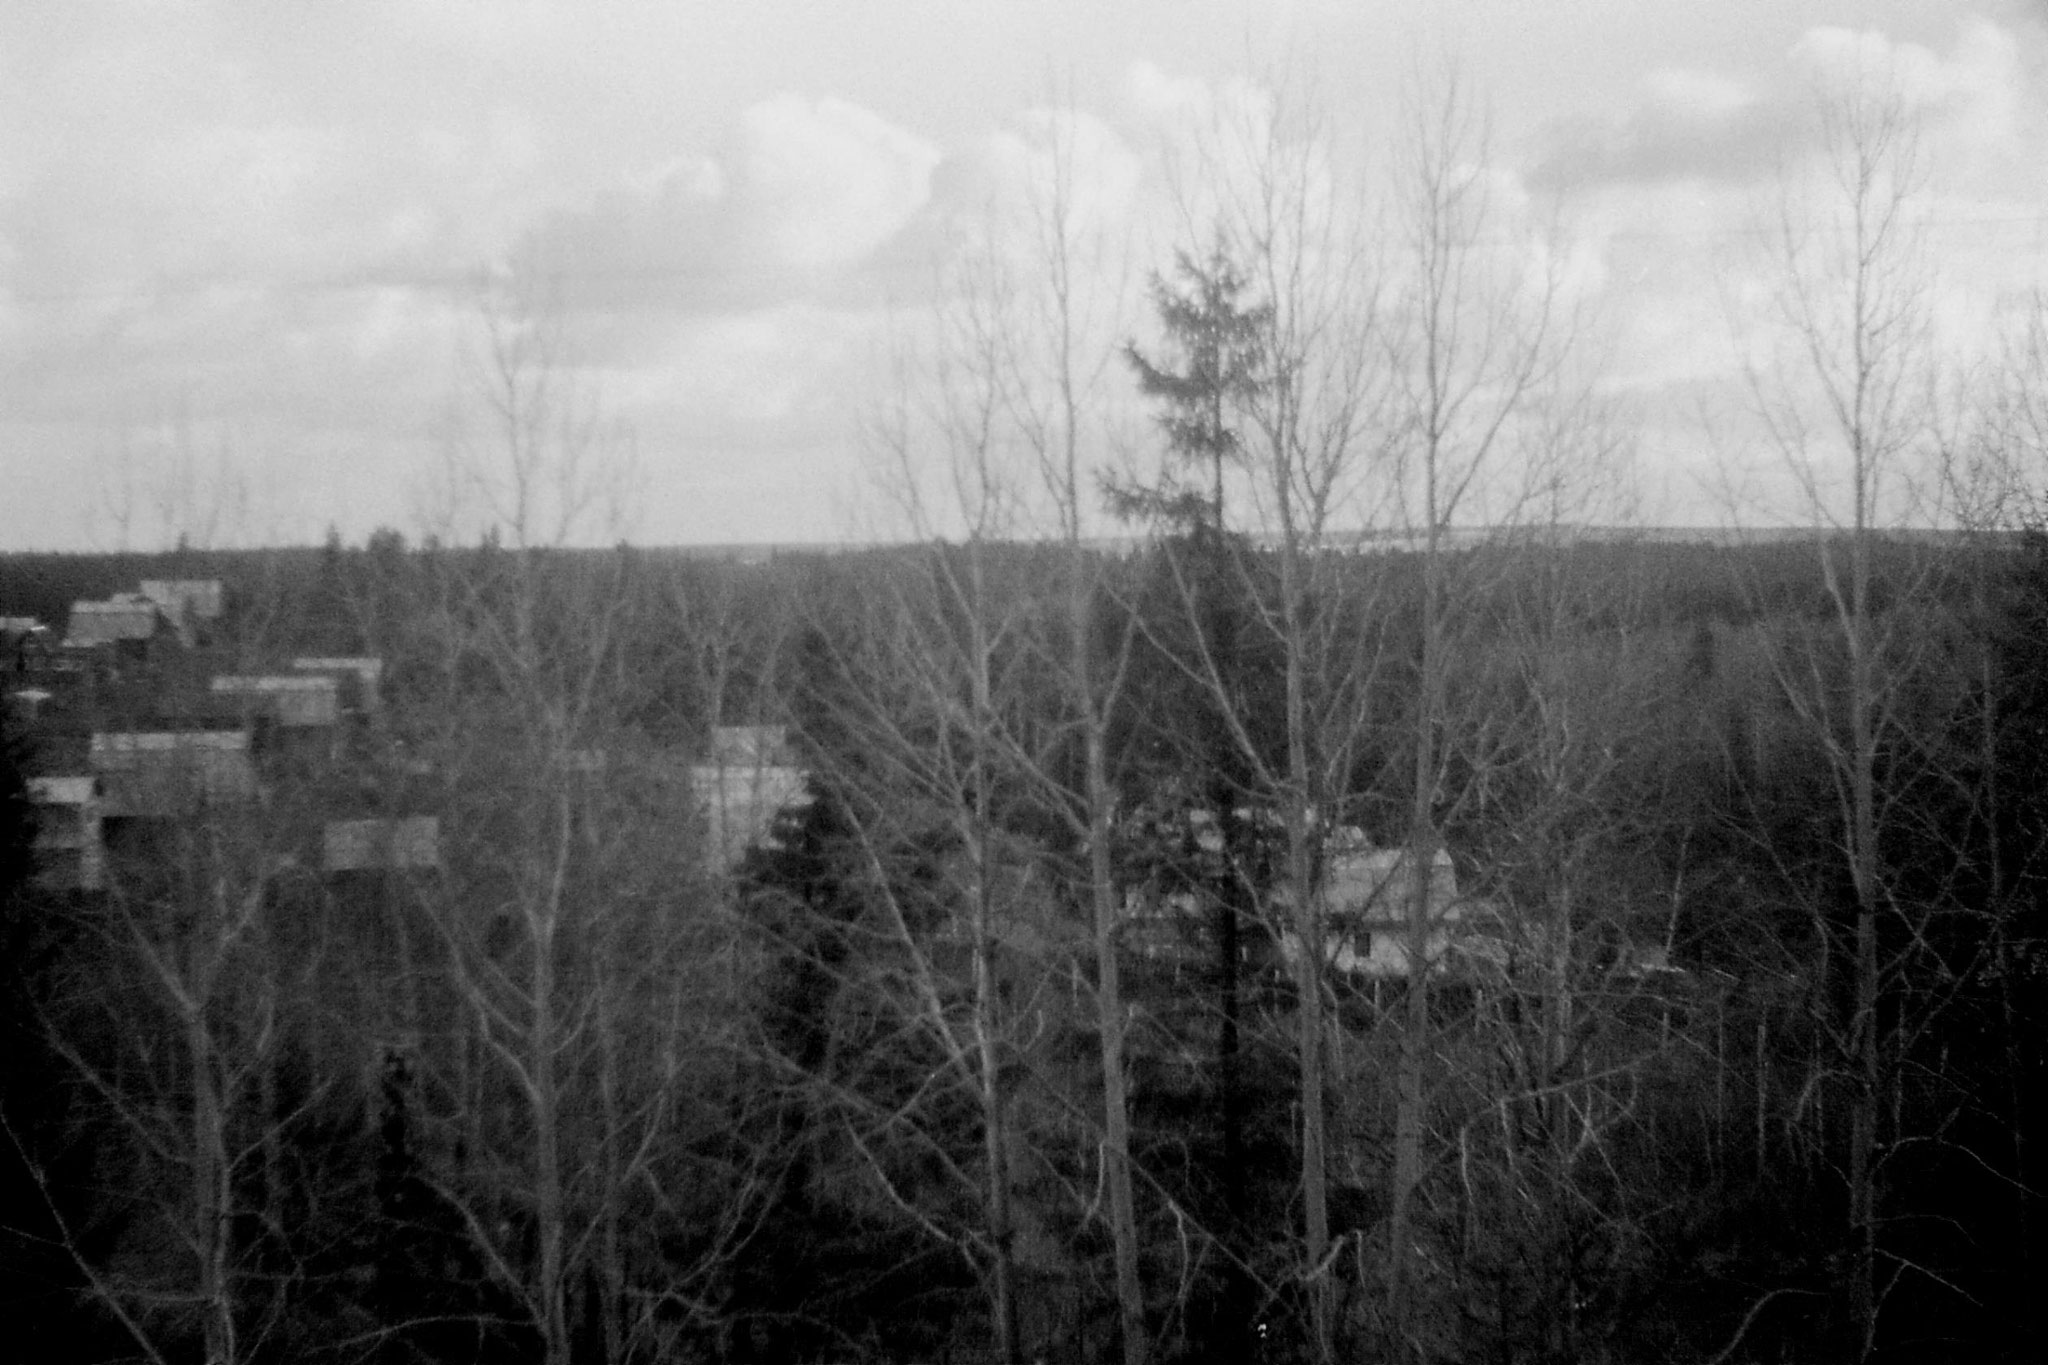 19/10/1988: 19: from Siberian Express between Balezino and Perm